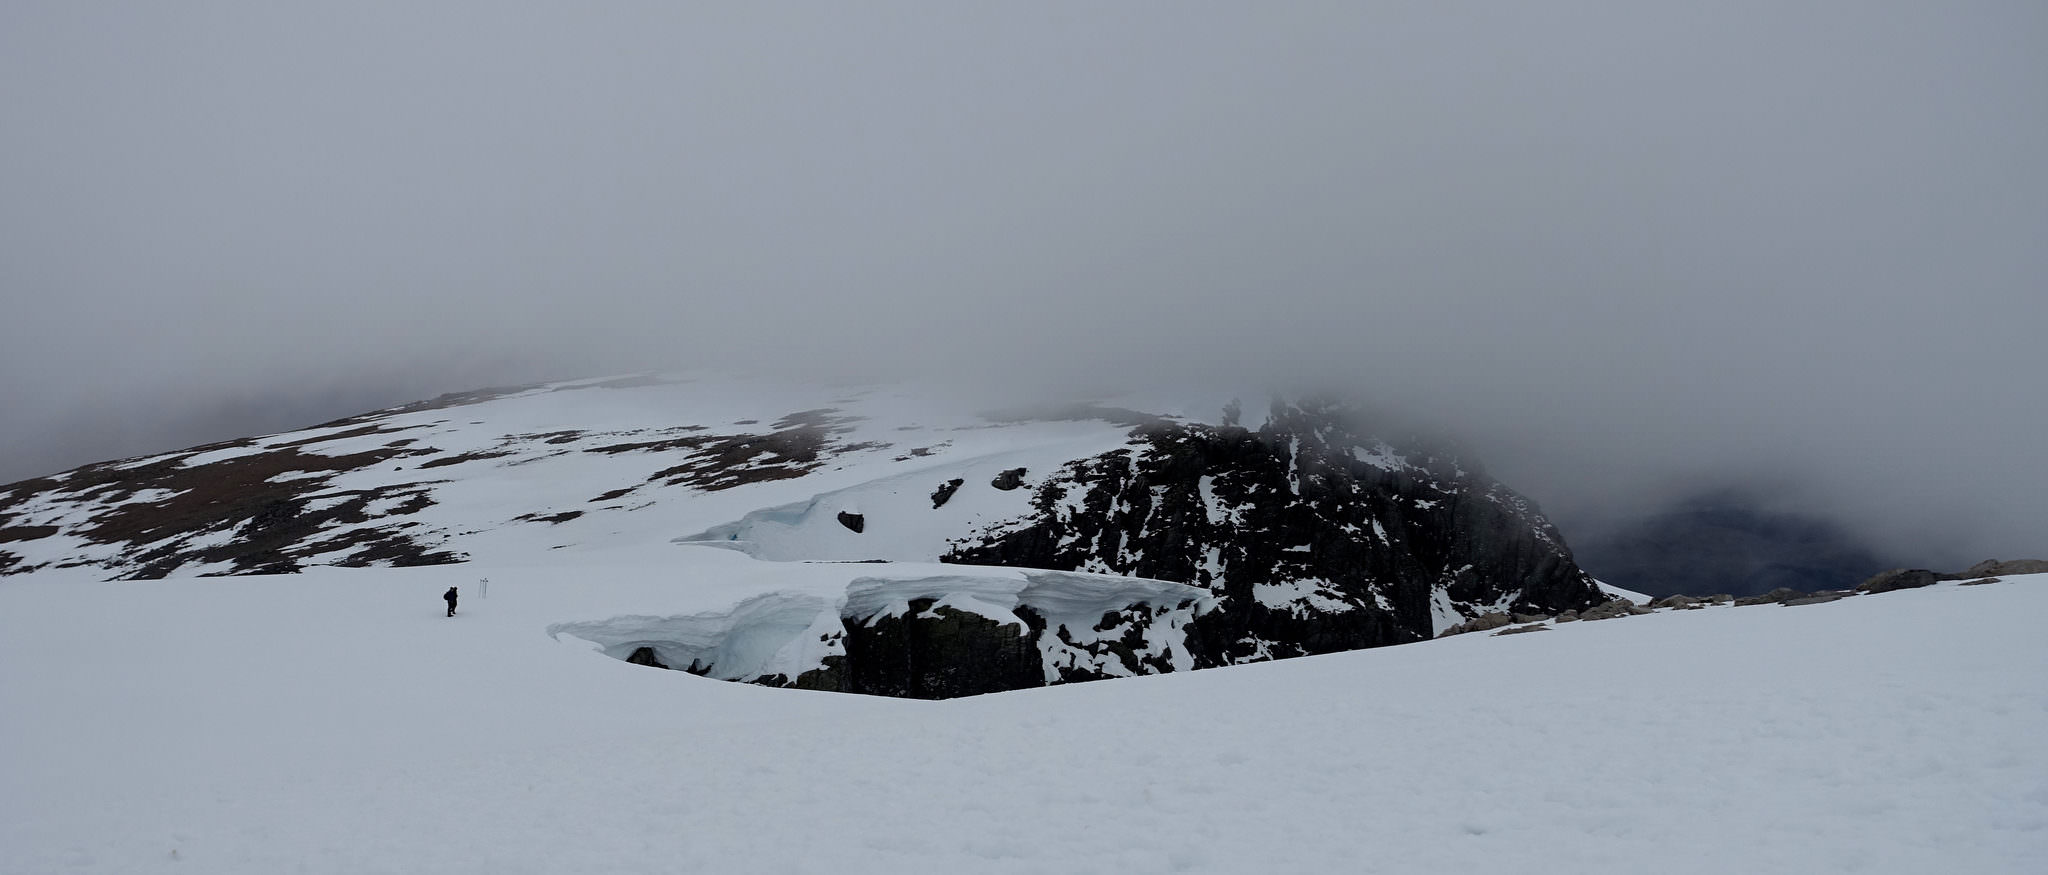 Snow and clouds near the summit of Ben Nevis